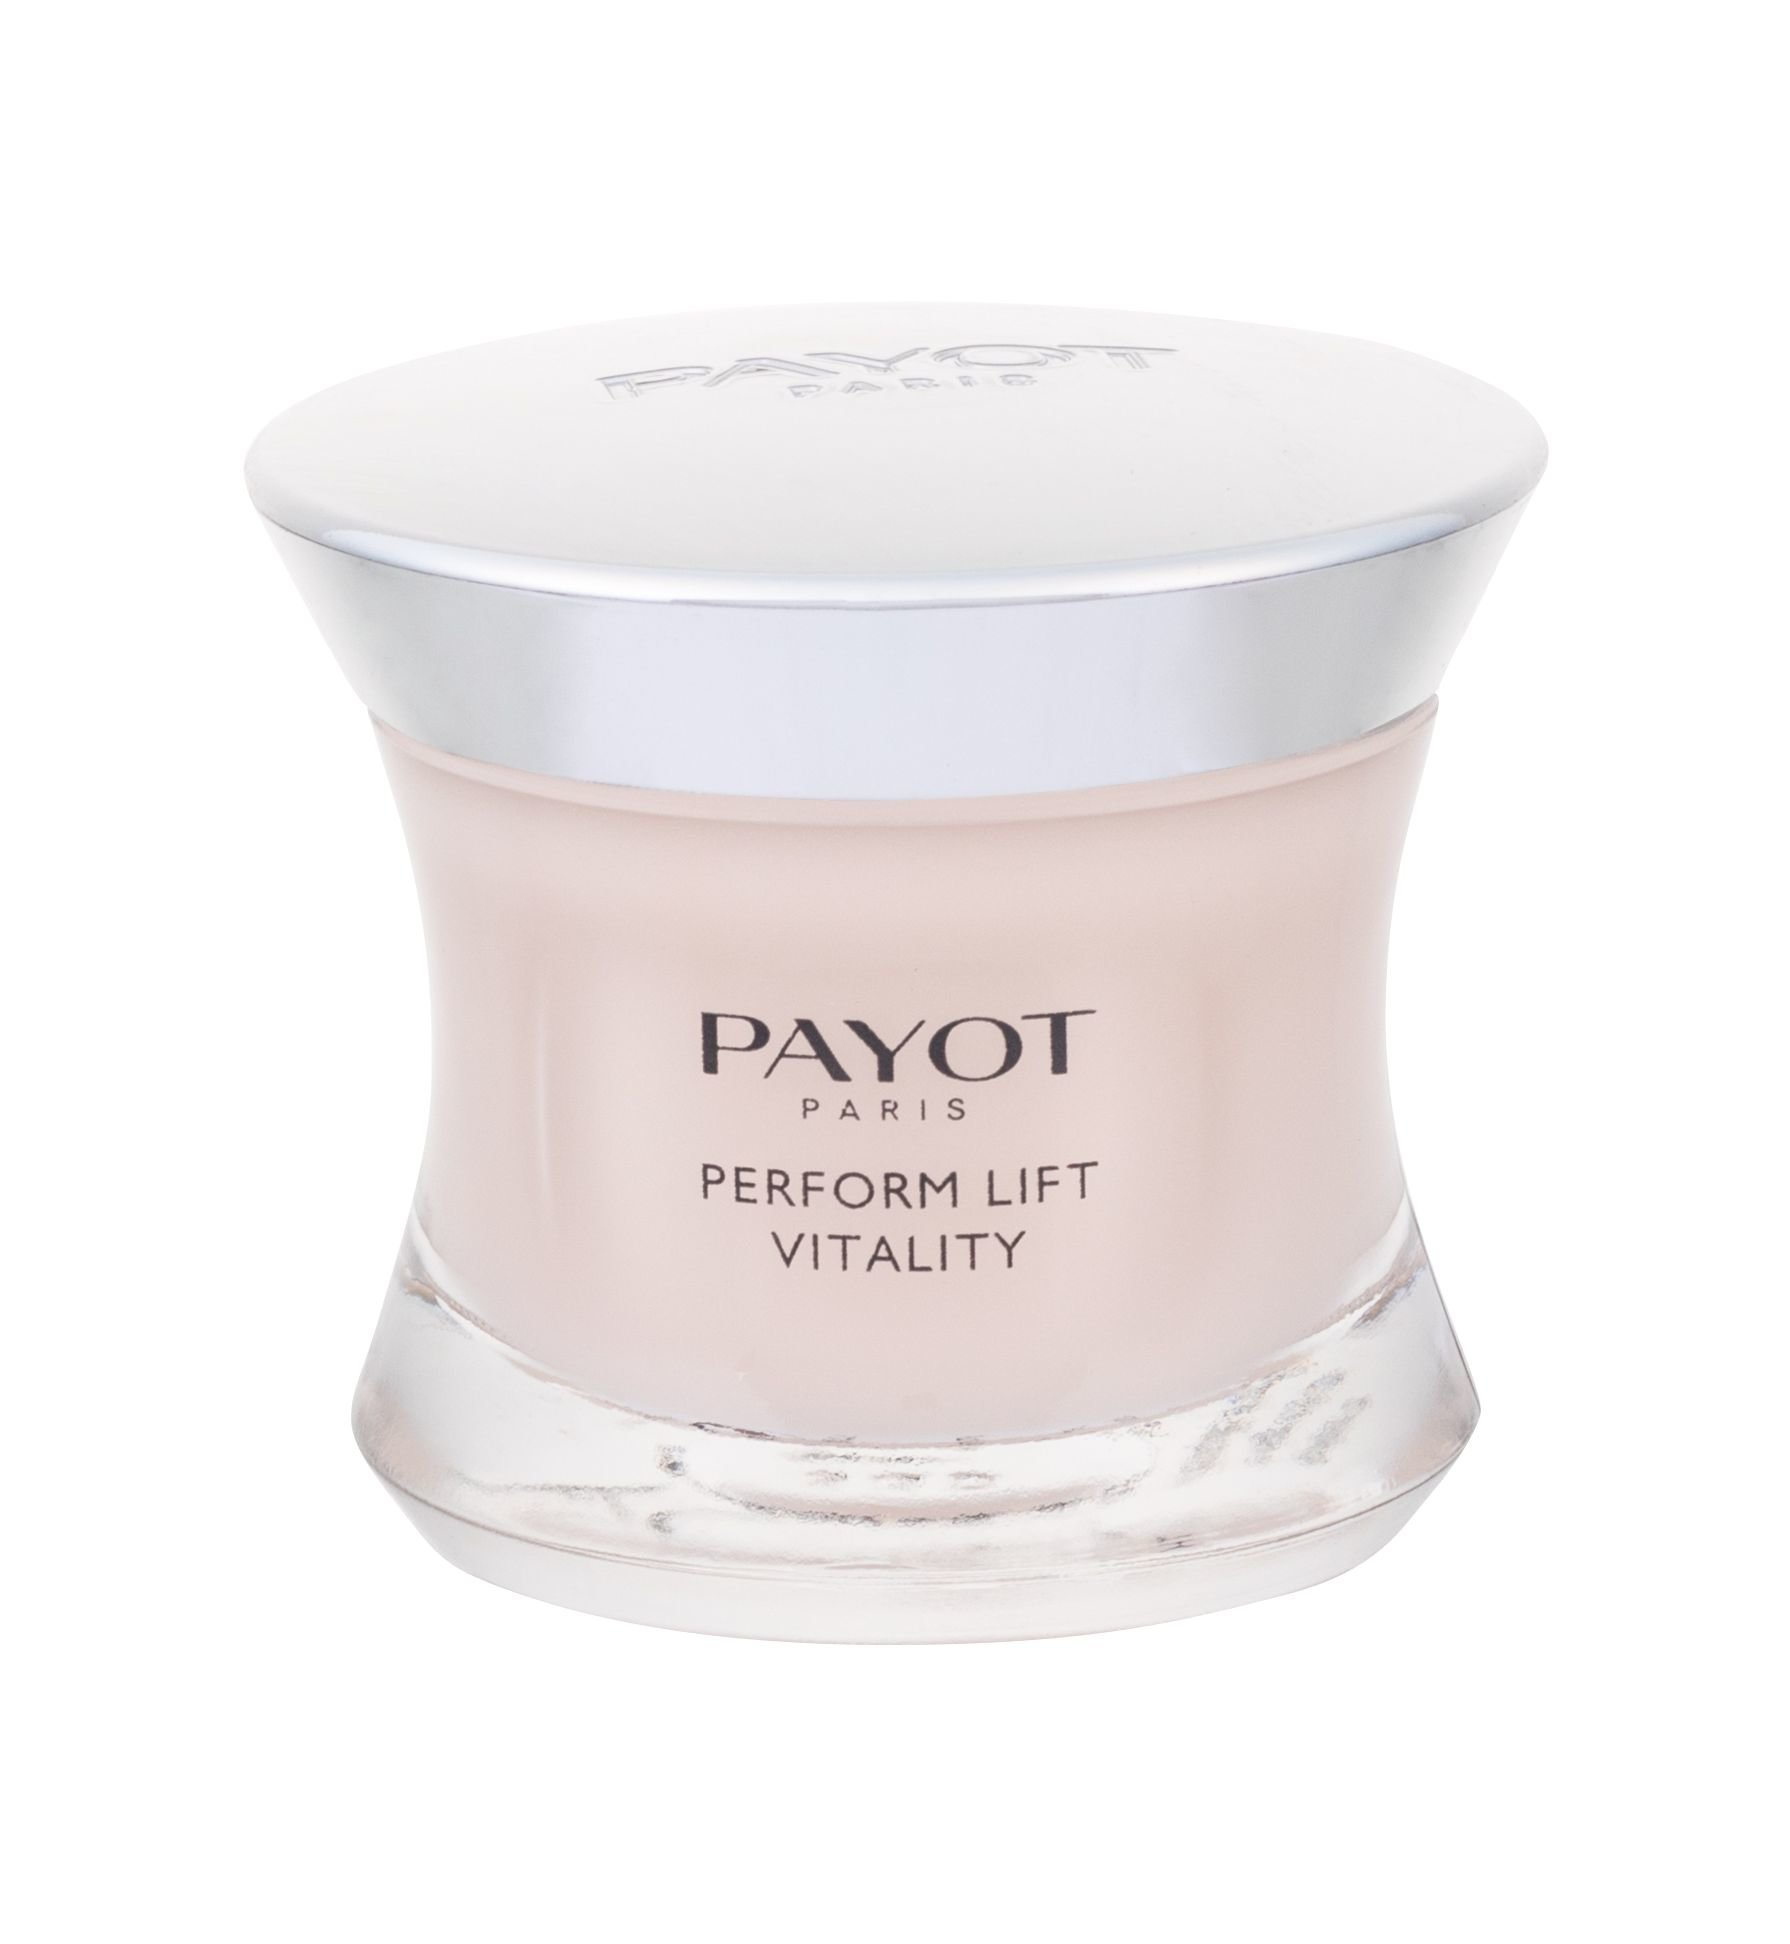 PAYOT Perform Lift Cosmetic 50ml  Vitality